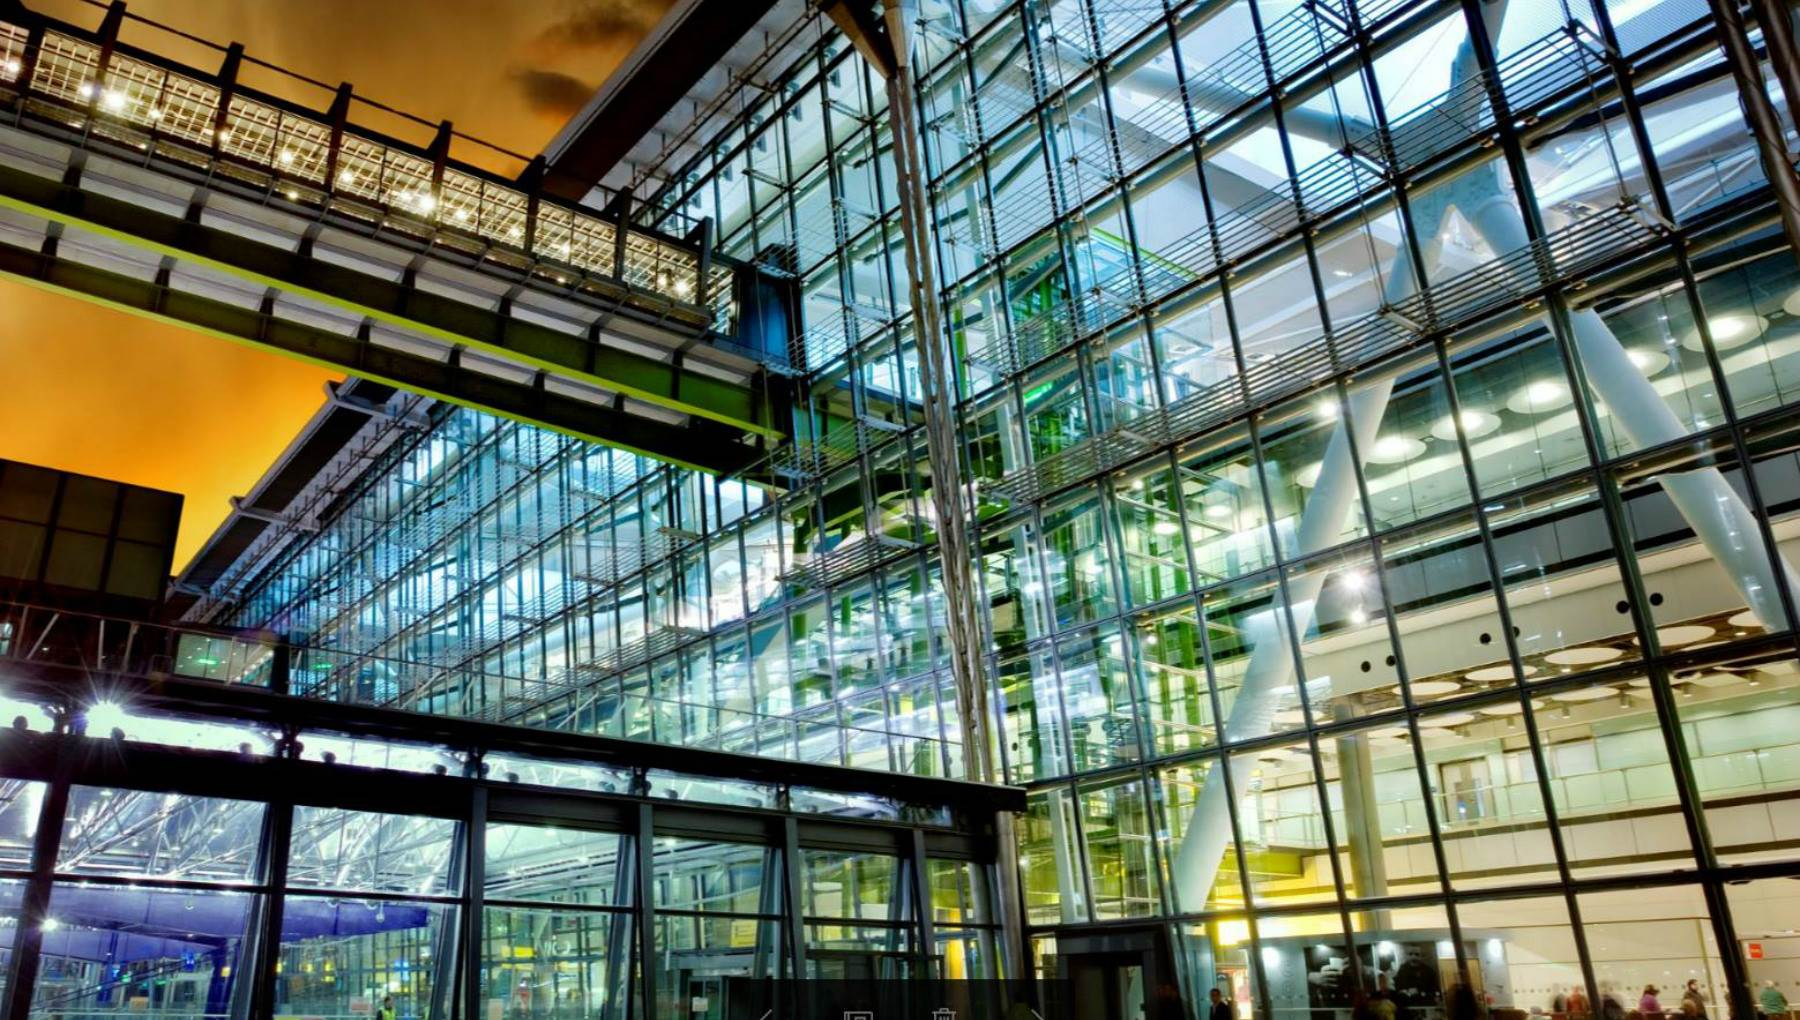 5 Dutch companies building a sustainable future | I amsterdam